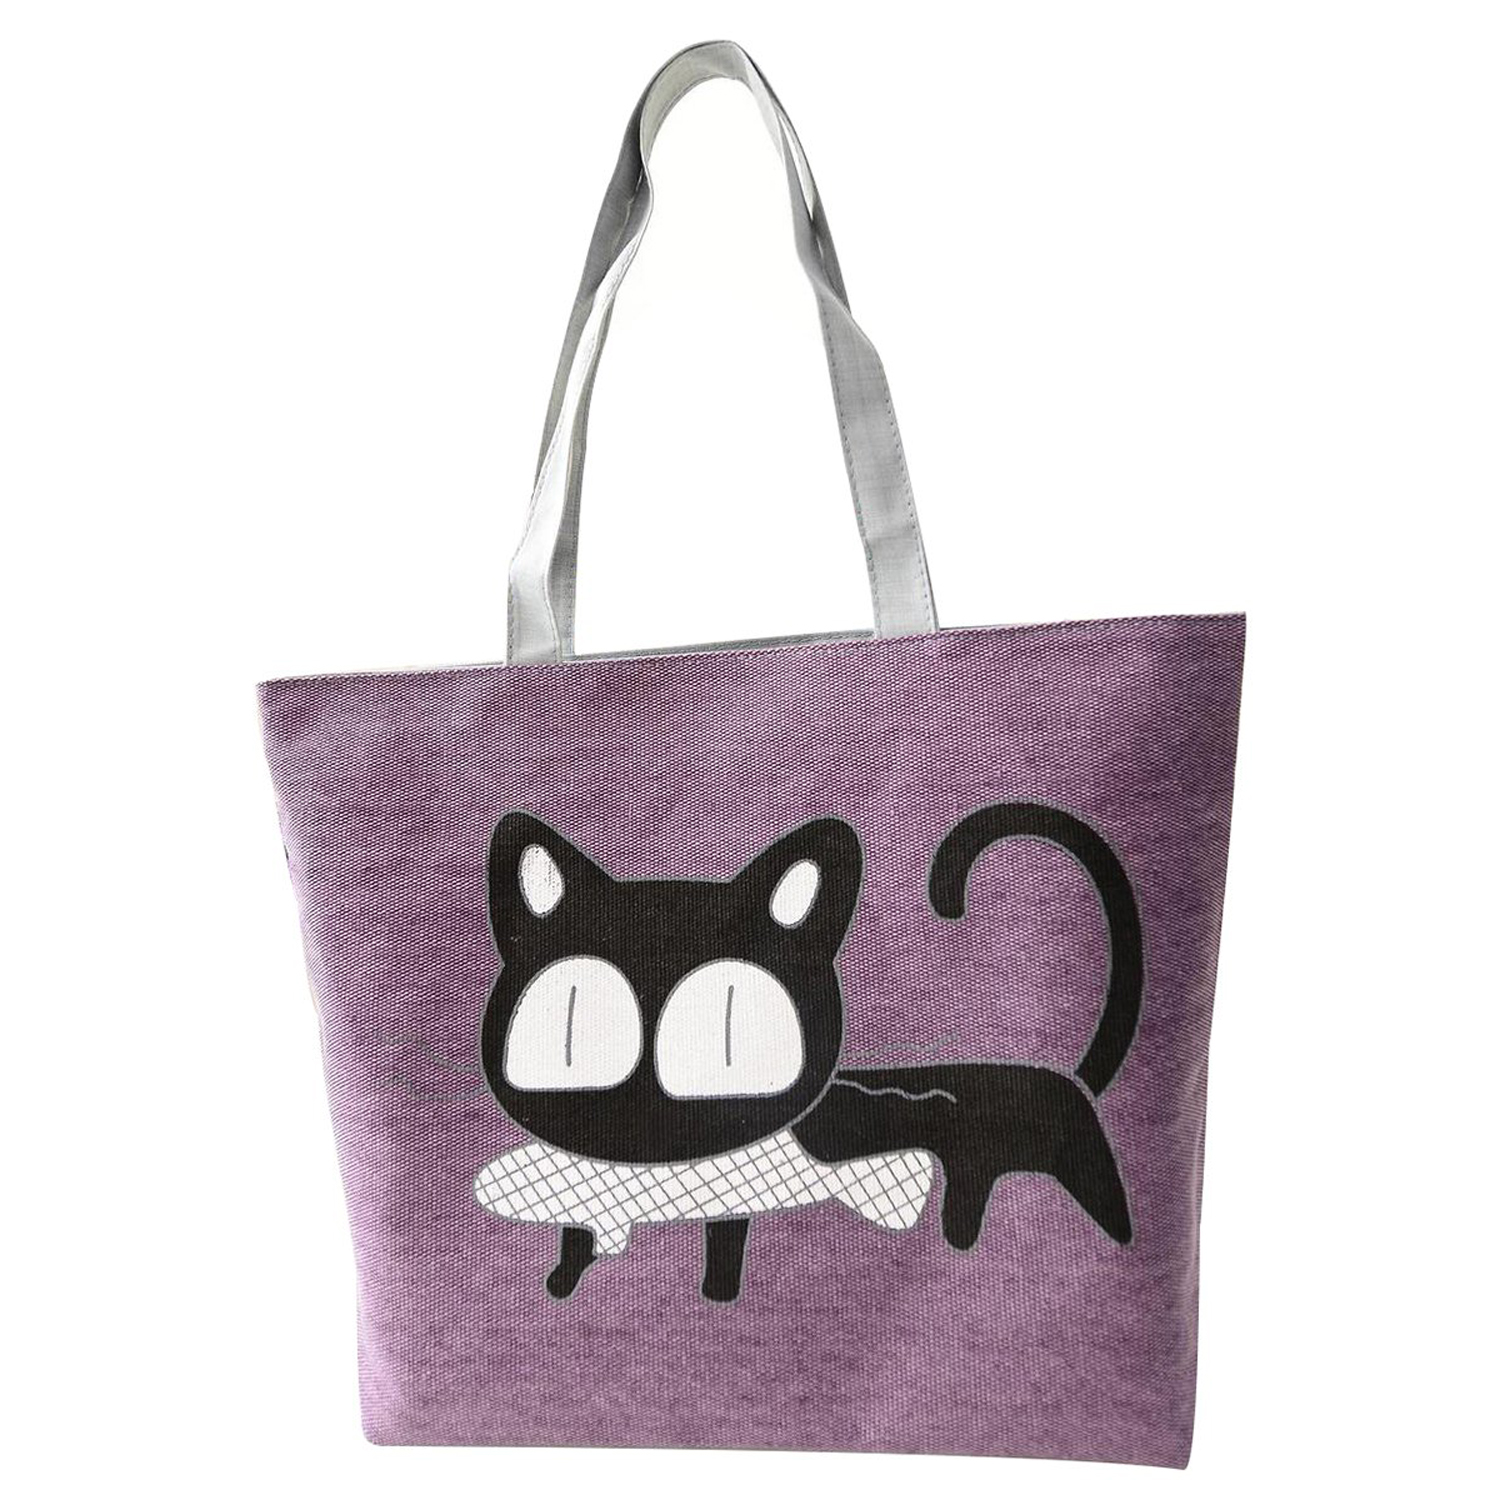 Girl cat eat fish shopping bag Shoulder Women Handbags beach tote bags handbags